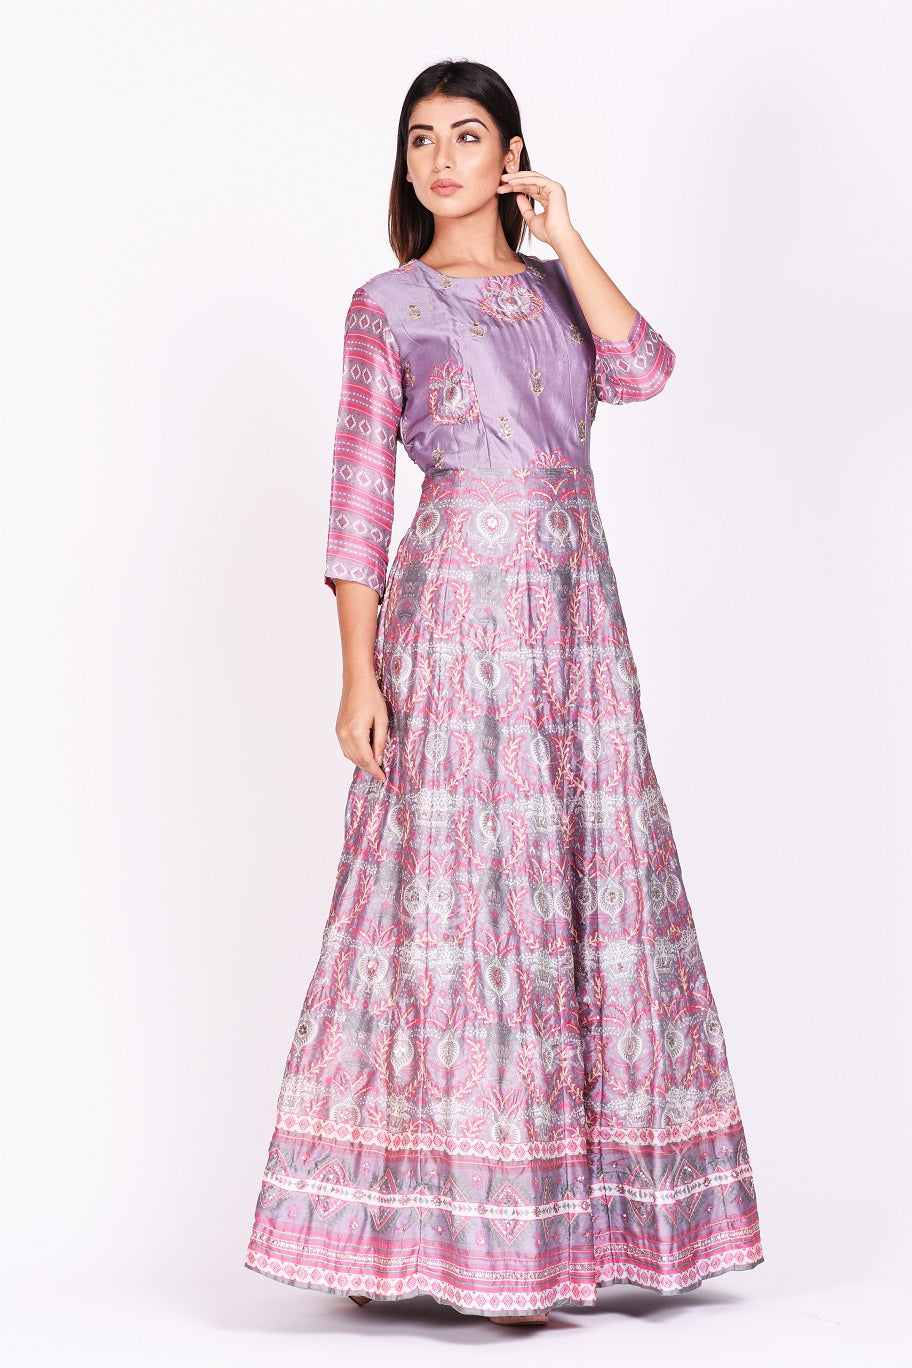 Shop lavender embroidered and printed silk Anarkali online in USA. Make a stunning fashion statement at weddings and special occasions with an exquisite collection of designer Anarkali suits, designer lehengas, Indian designer dresses from Pure Elegance Indian fashion store in USA. -side